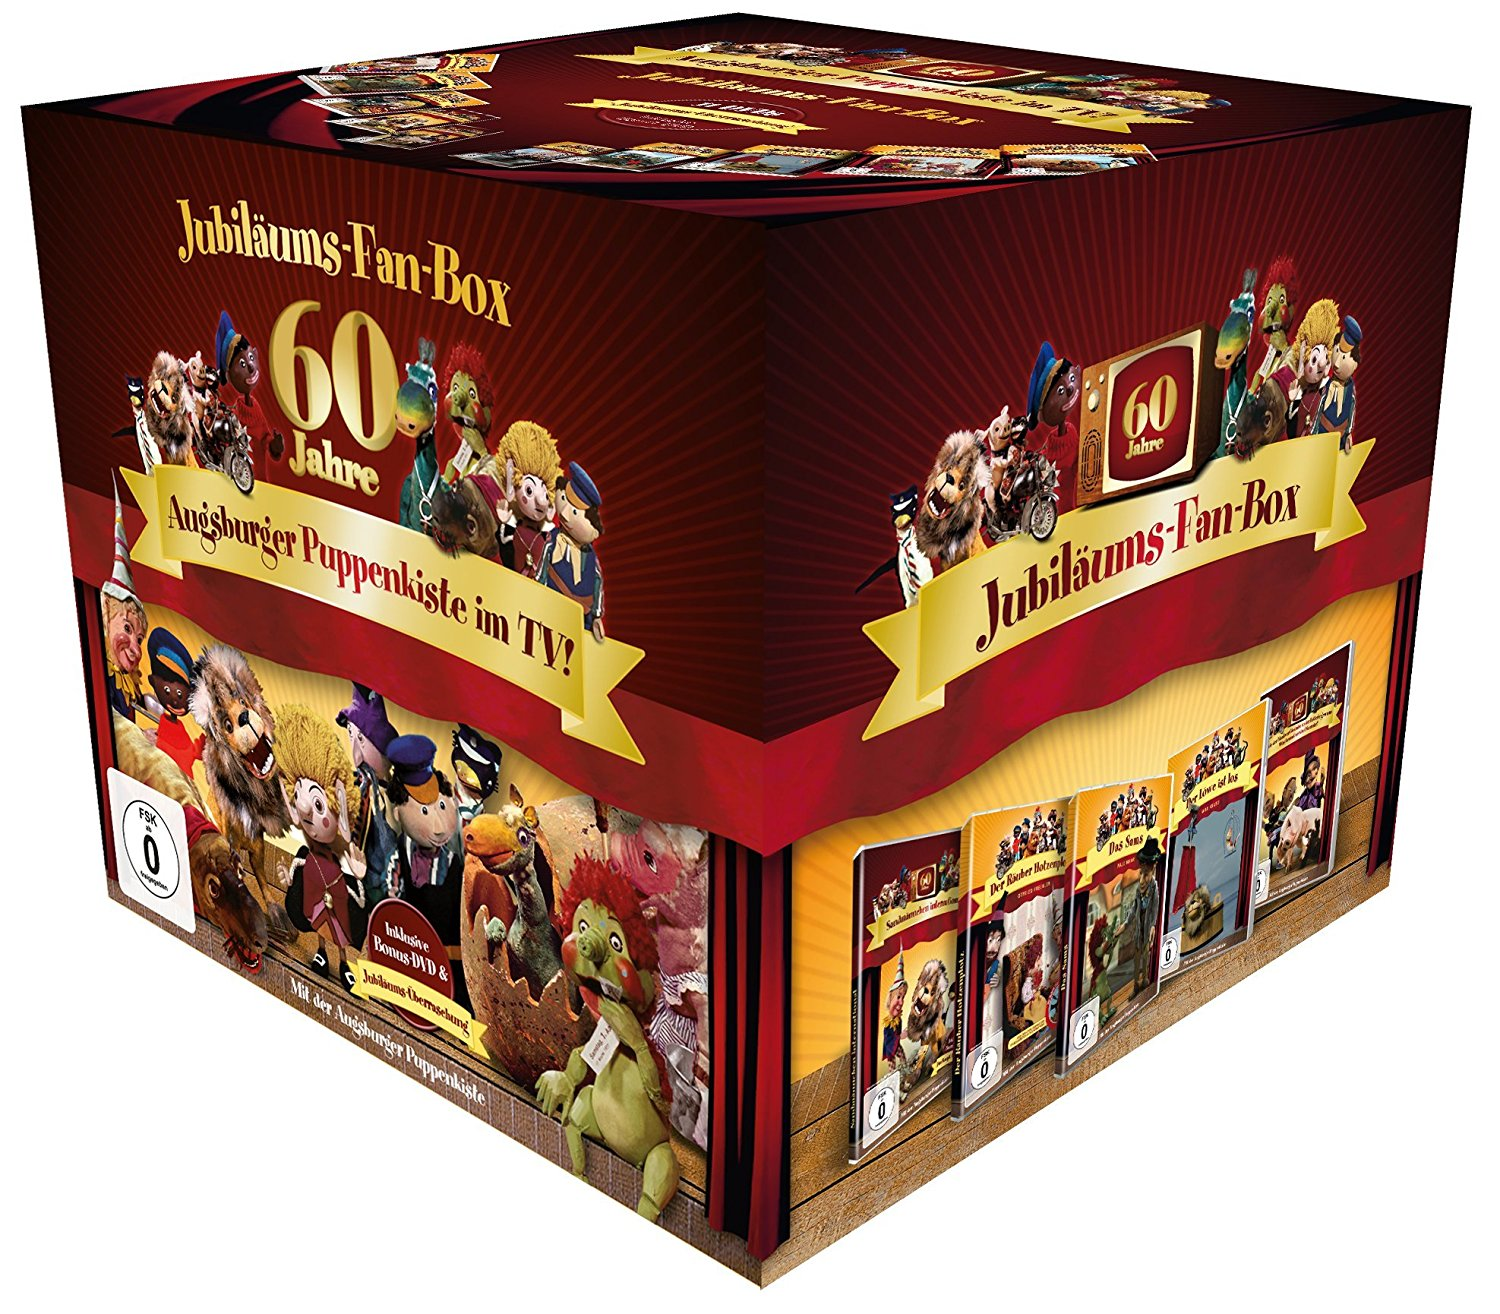 Augsburger Puppenkiste - Jubiläums-Fan-Box.